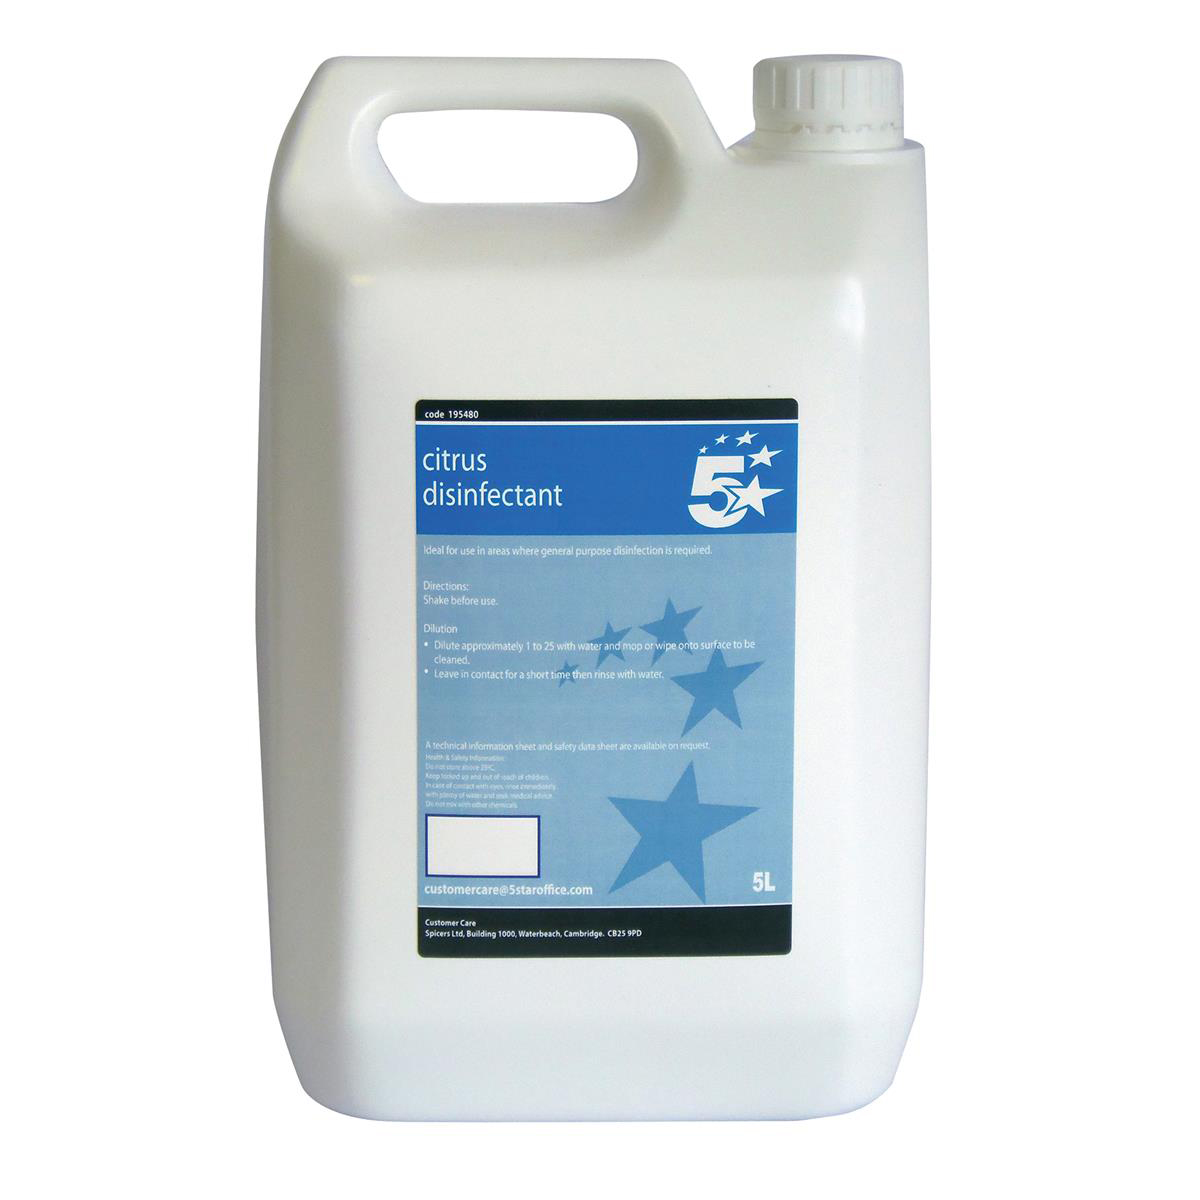 Cleaning Chemicals 5 Star Facilities Concentrated Citrus Disinfectant 5 Litres